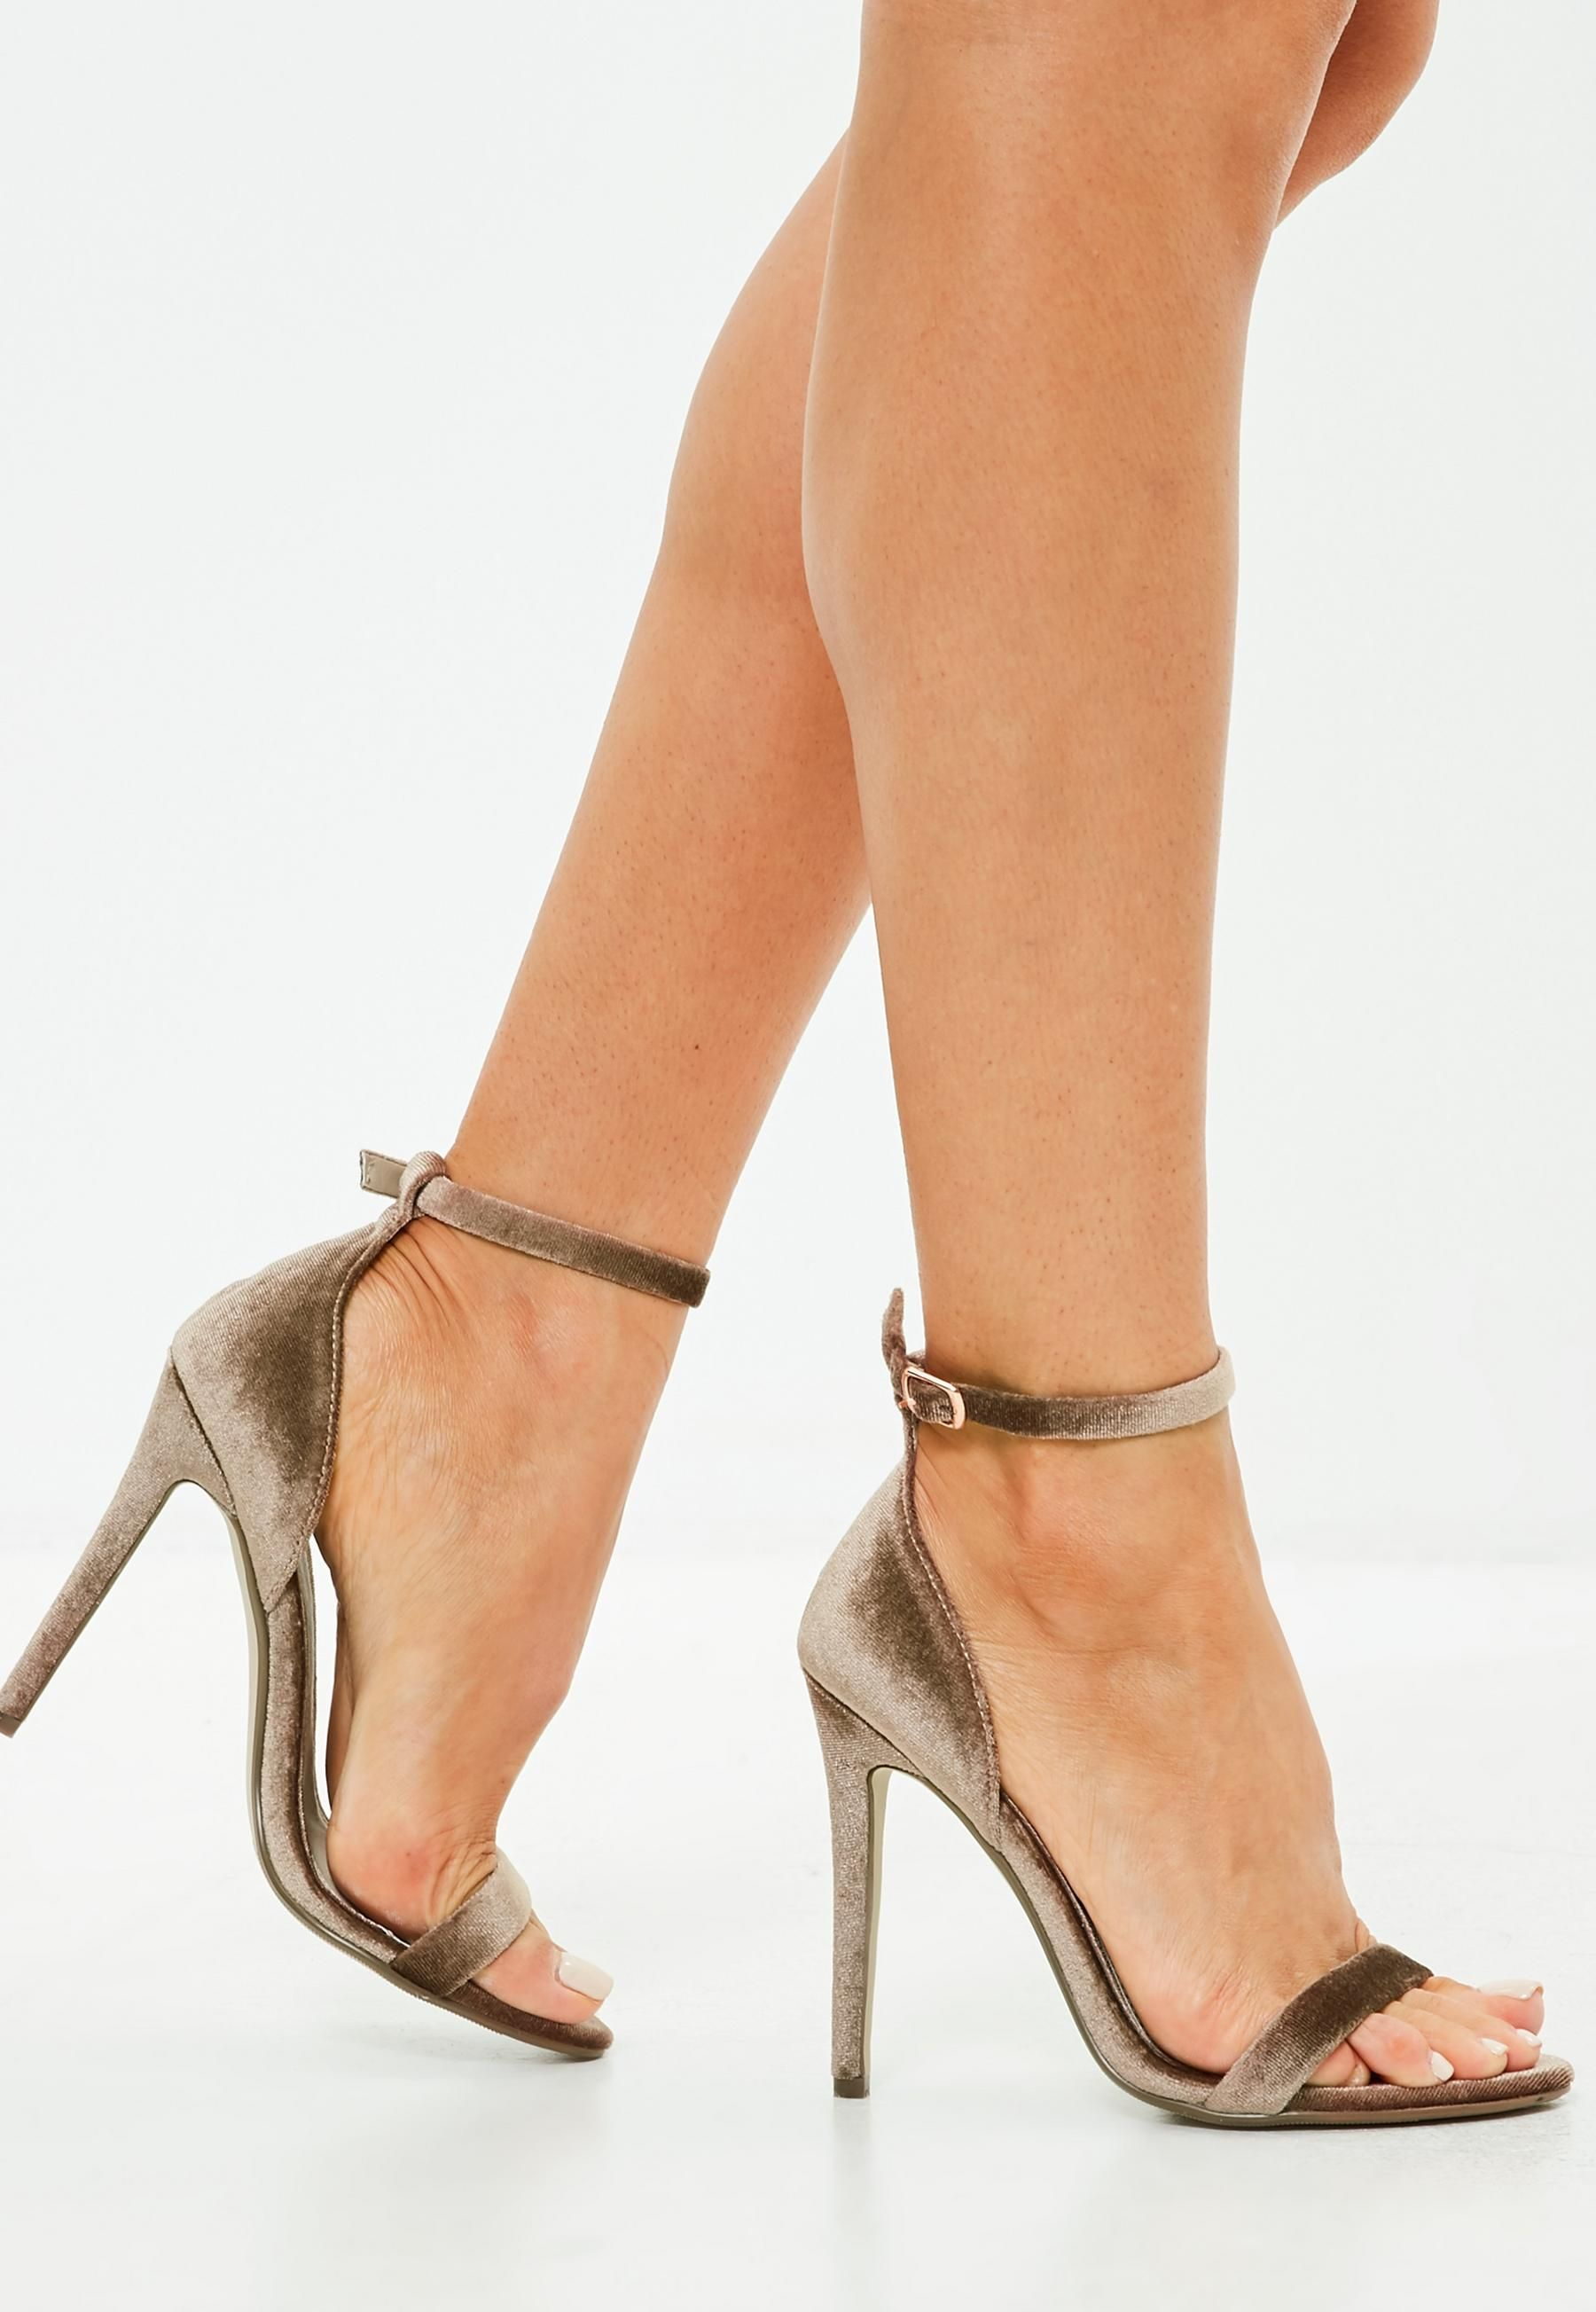 41b5a4ebc54 brown velvet two strap barely there heels